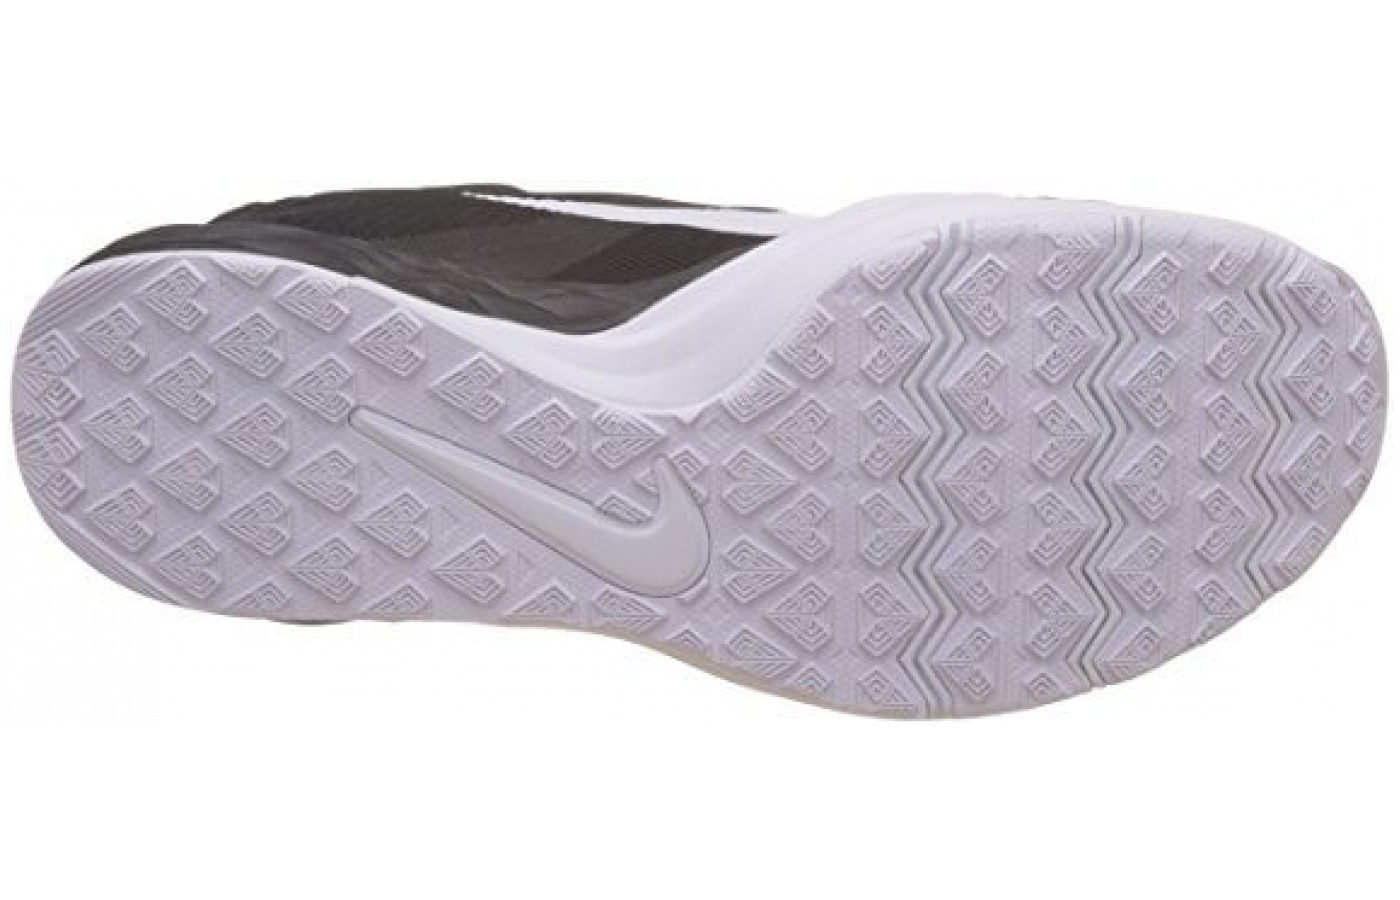 The Nike Prime Iron DF SP sole